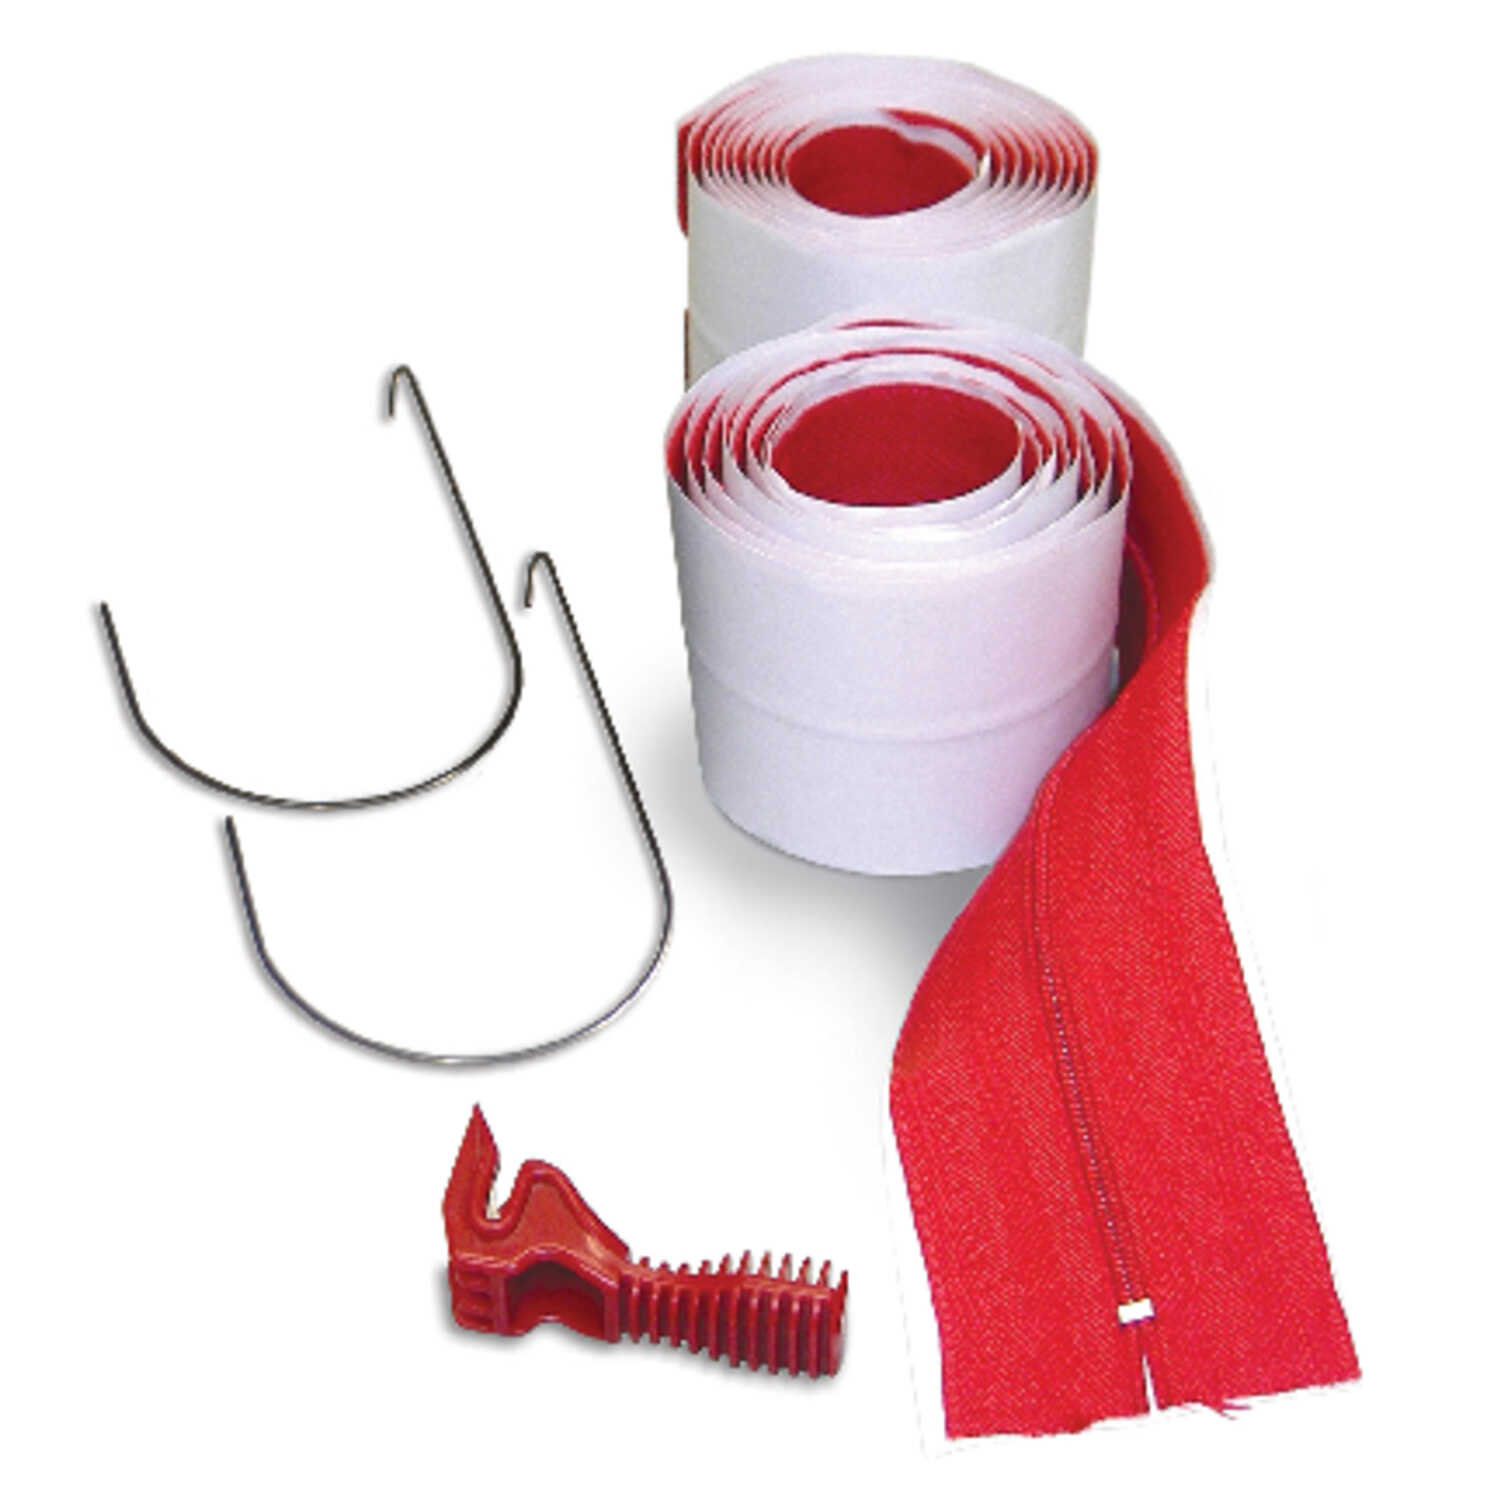 Zipwall  Heavy Weight  Cloth  Adhesive Zippers  3 in. W x 7 ft. L Clear/Red